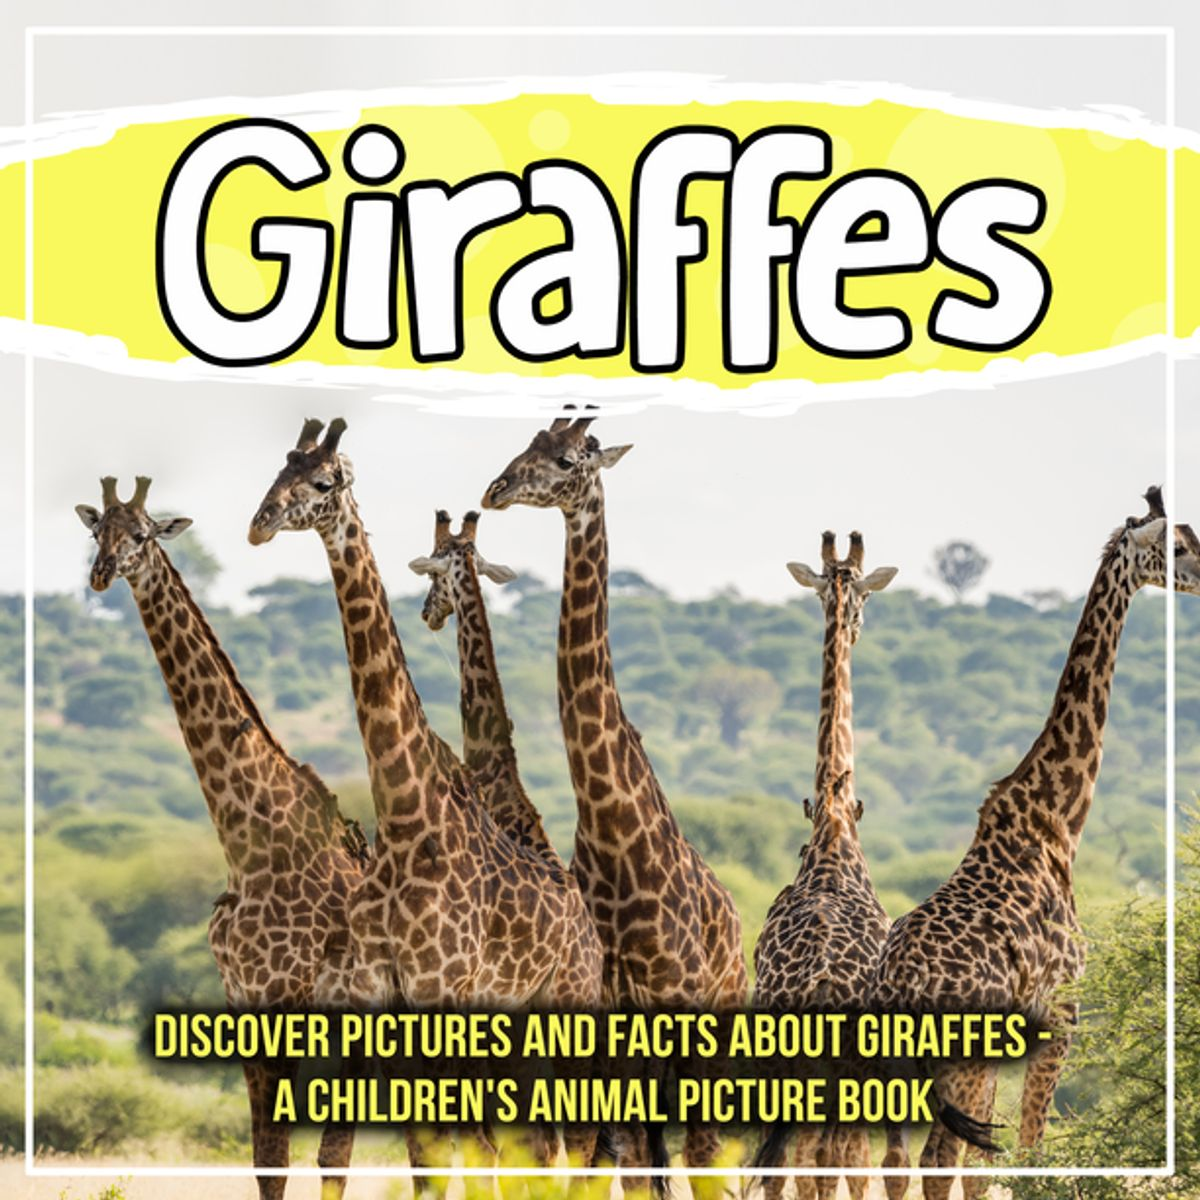 Giraffes Discover Pictures And Facts About Giraffes